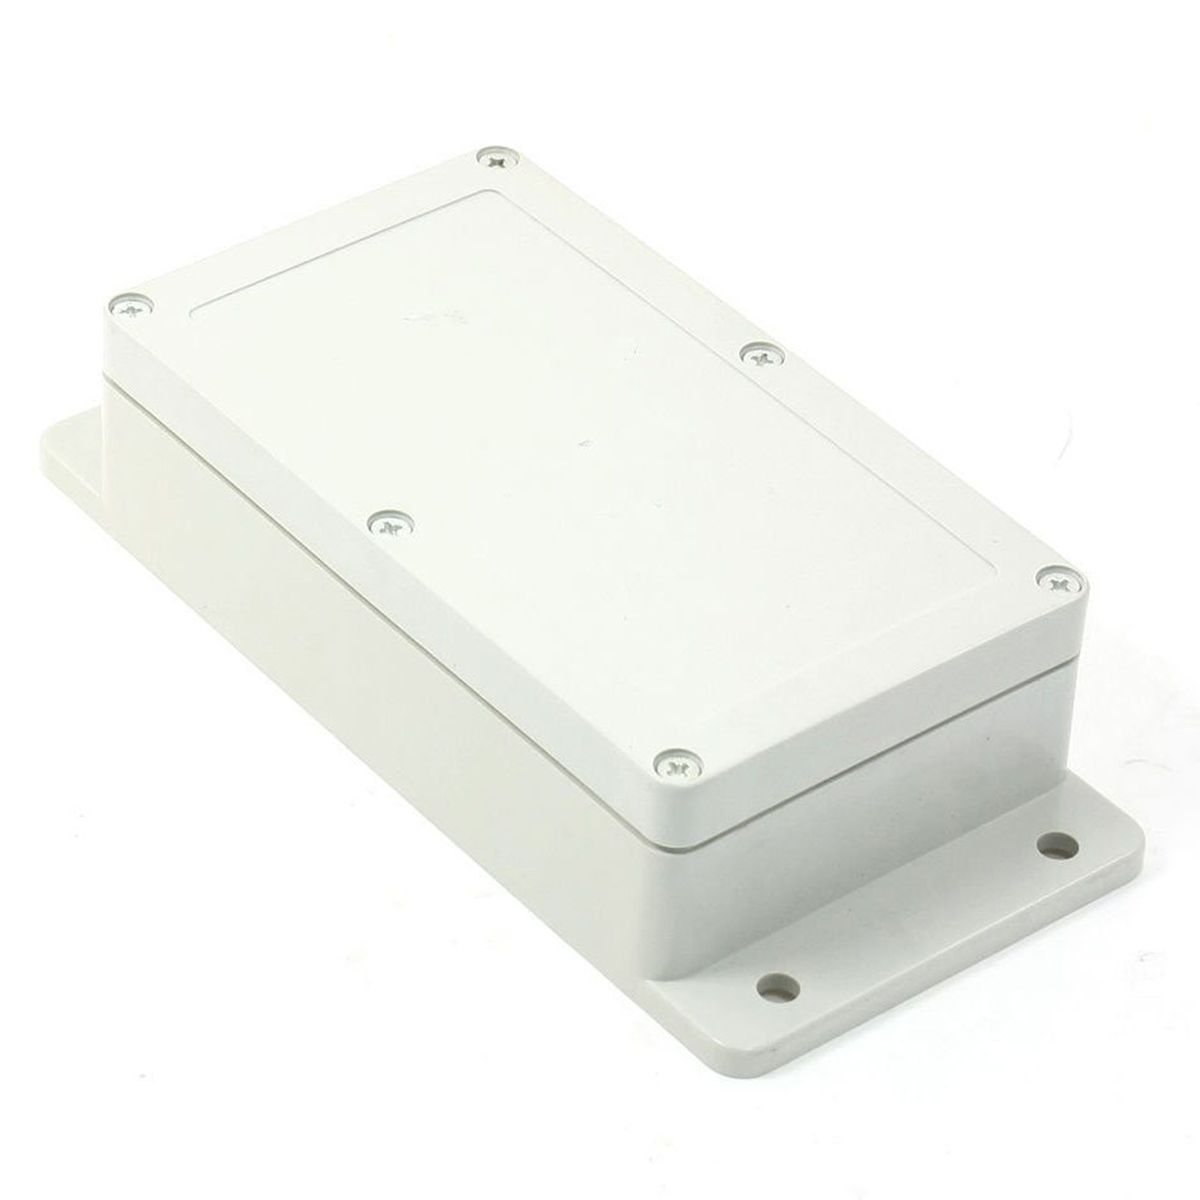 Waterproof Electronic Project Enclosure White Plastic Power Junction Box Case 158mmx90mmx46mm 1 piece free shipping plastic enclosure for wall mount amplifier case waterproof plastic junction box 110 65 28mm